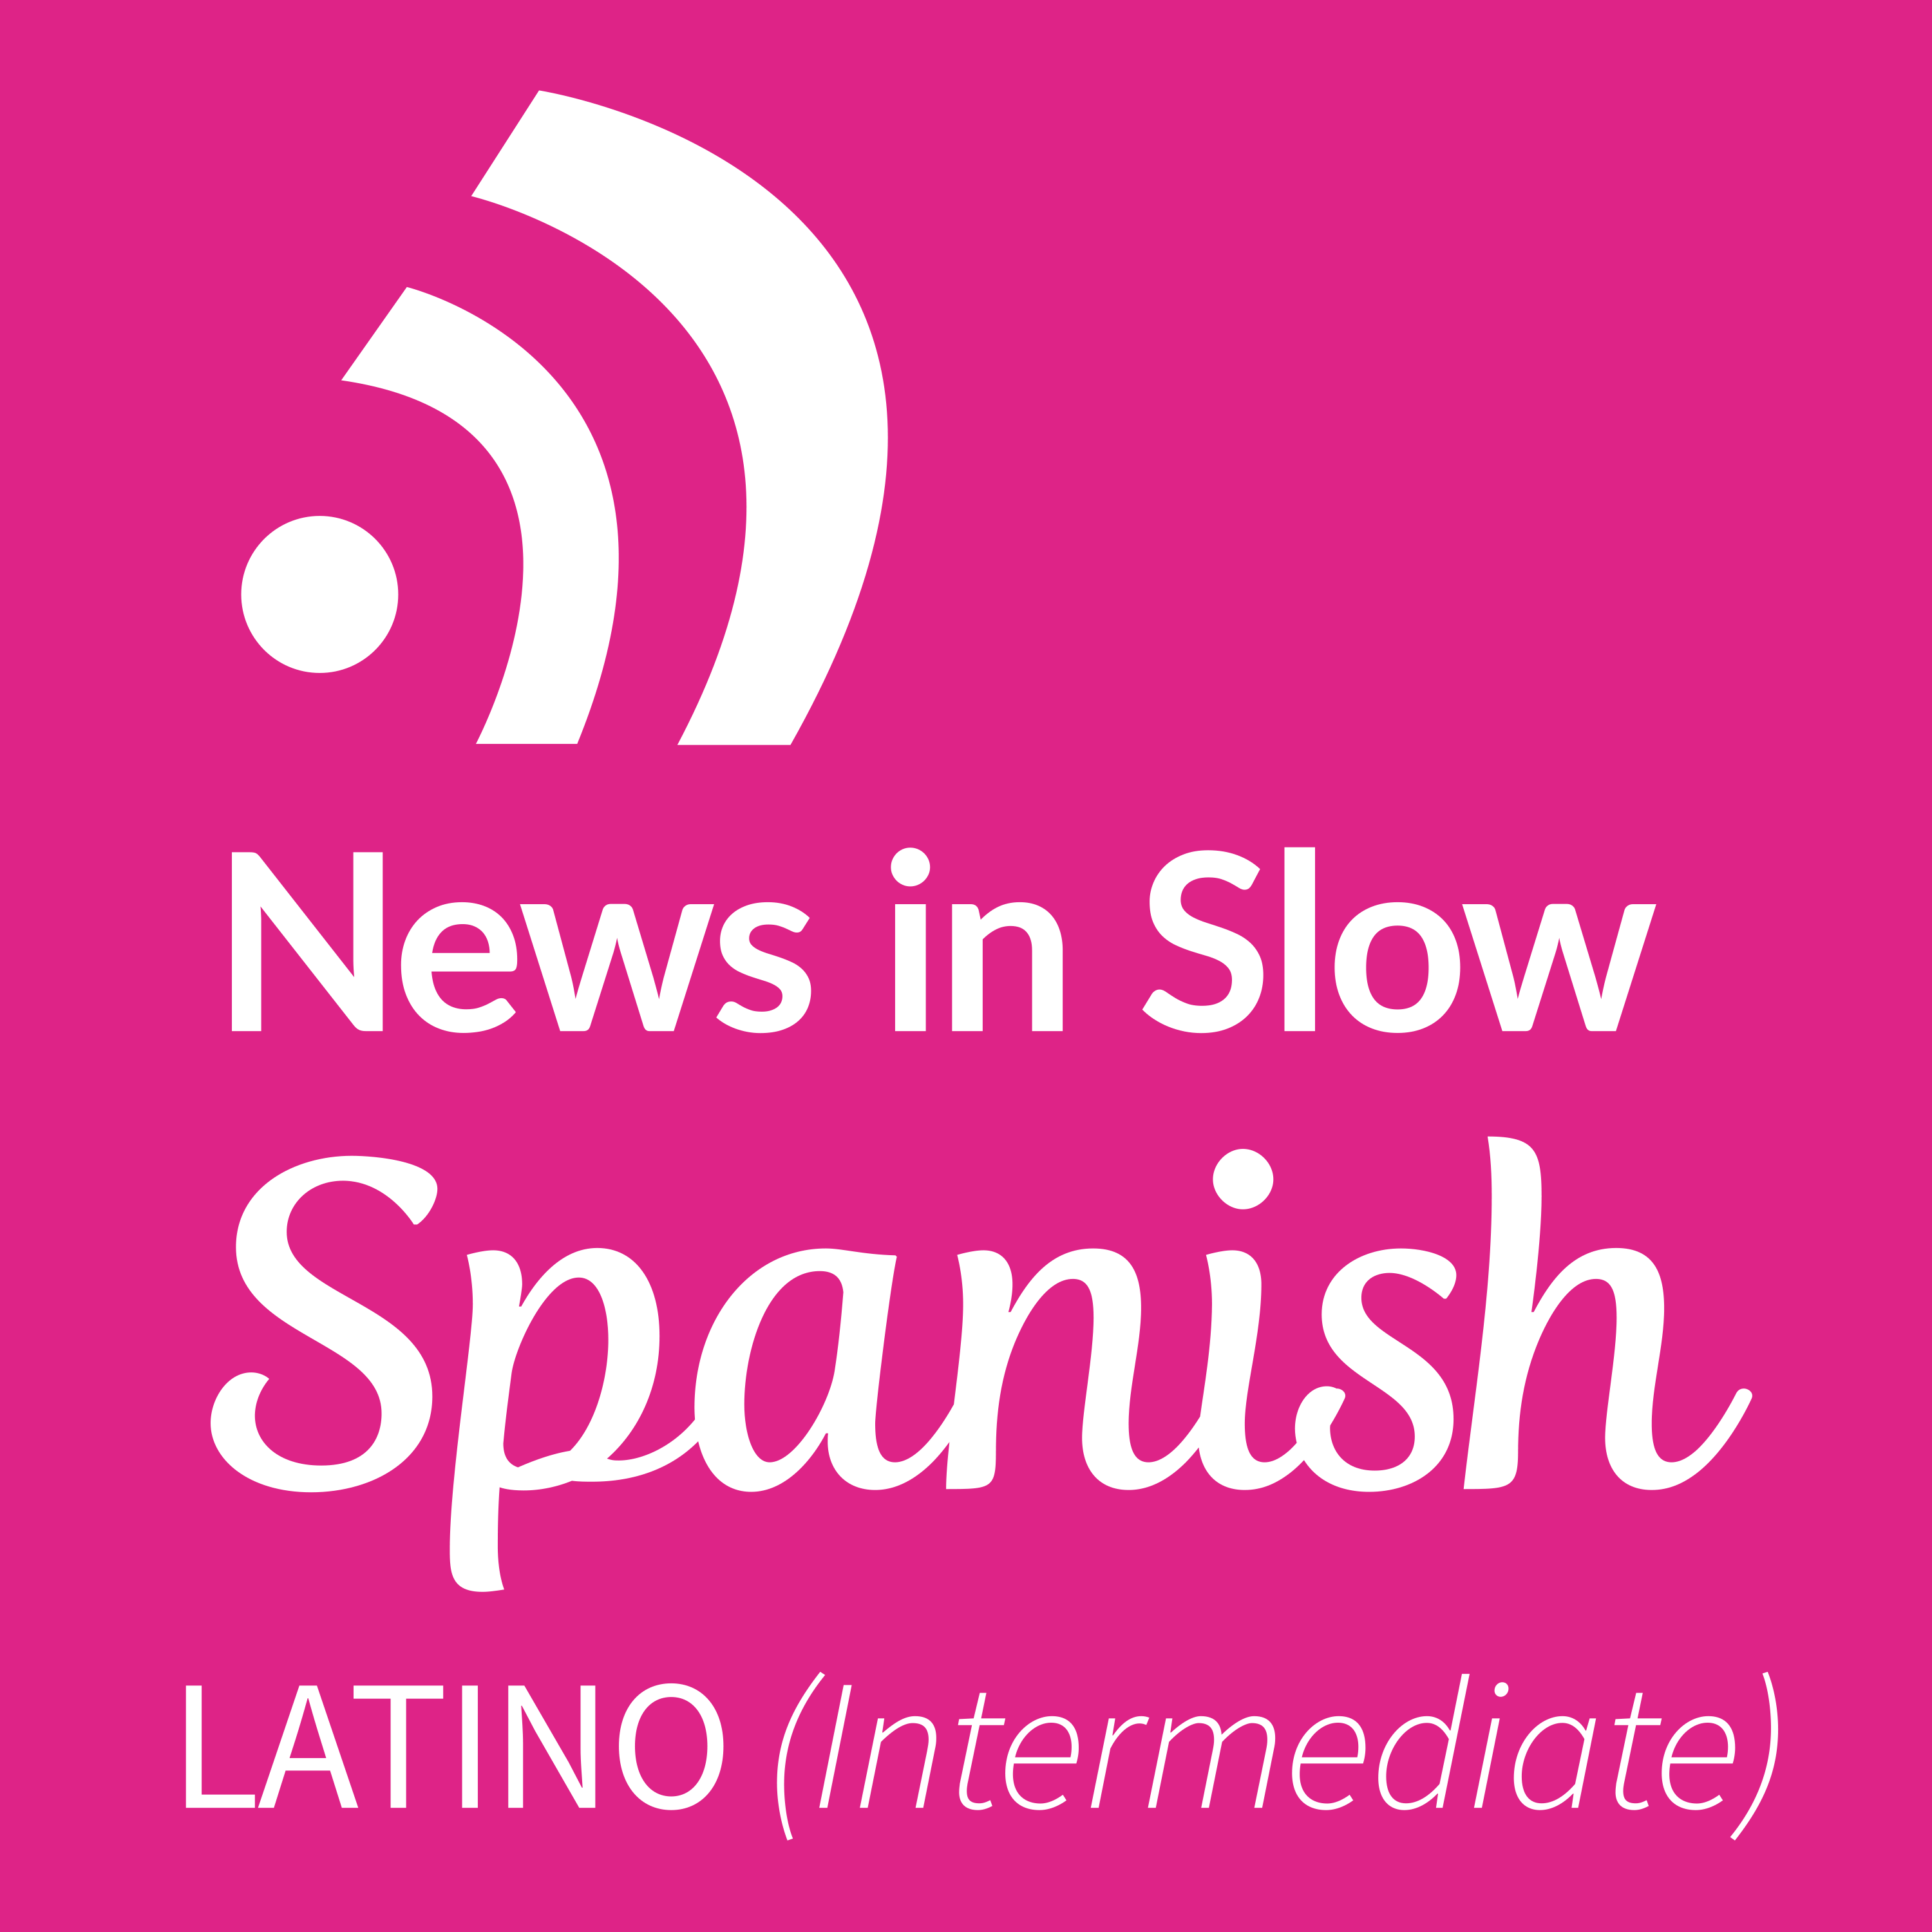 News in Slow Spanish Latino - # 165 - Language learning in the context of current events